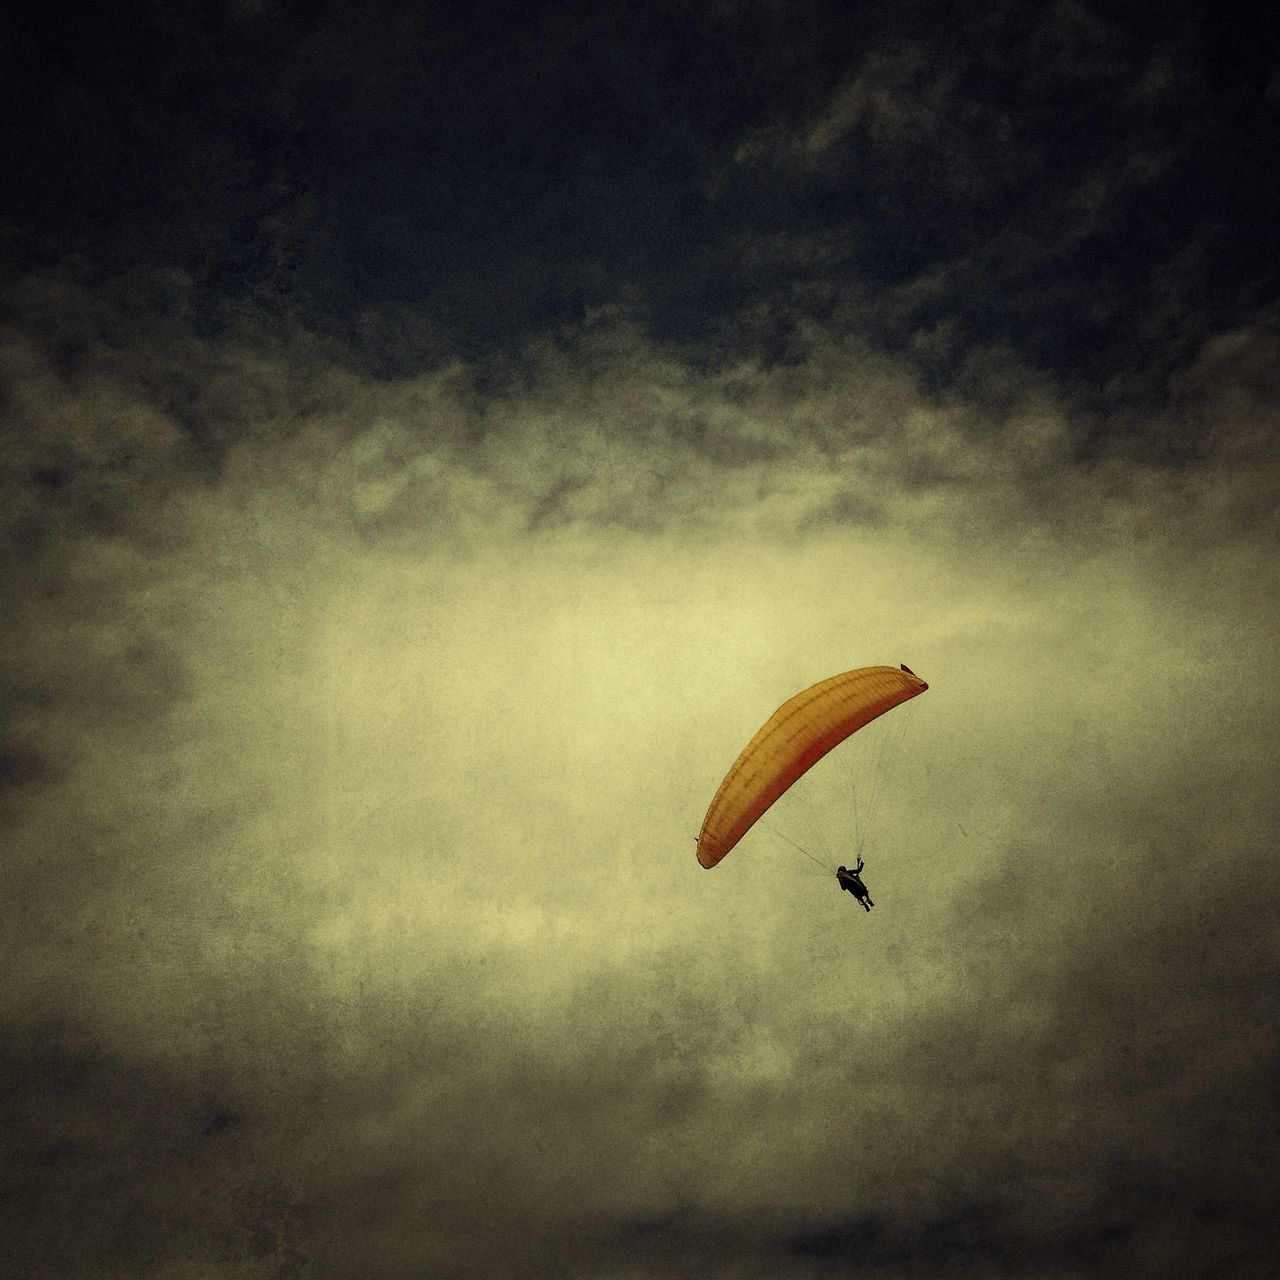 Low angle view of parachute against the sky